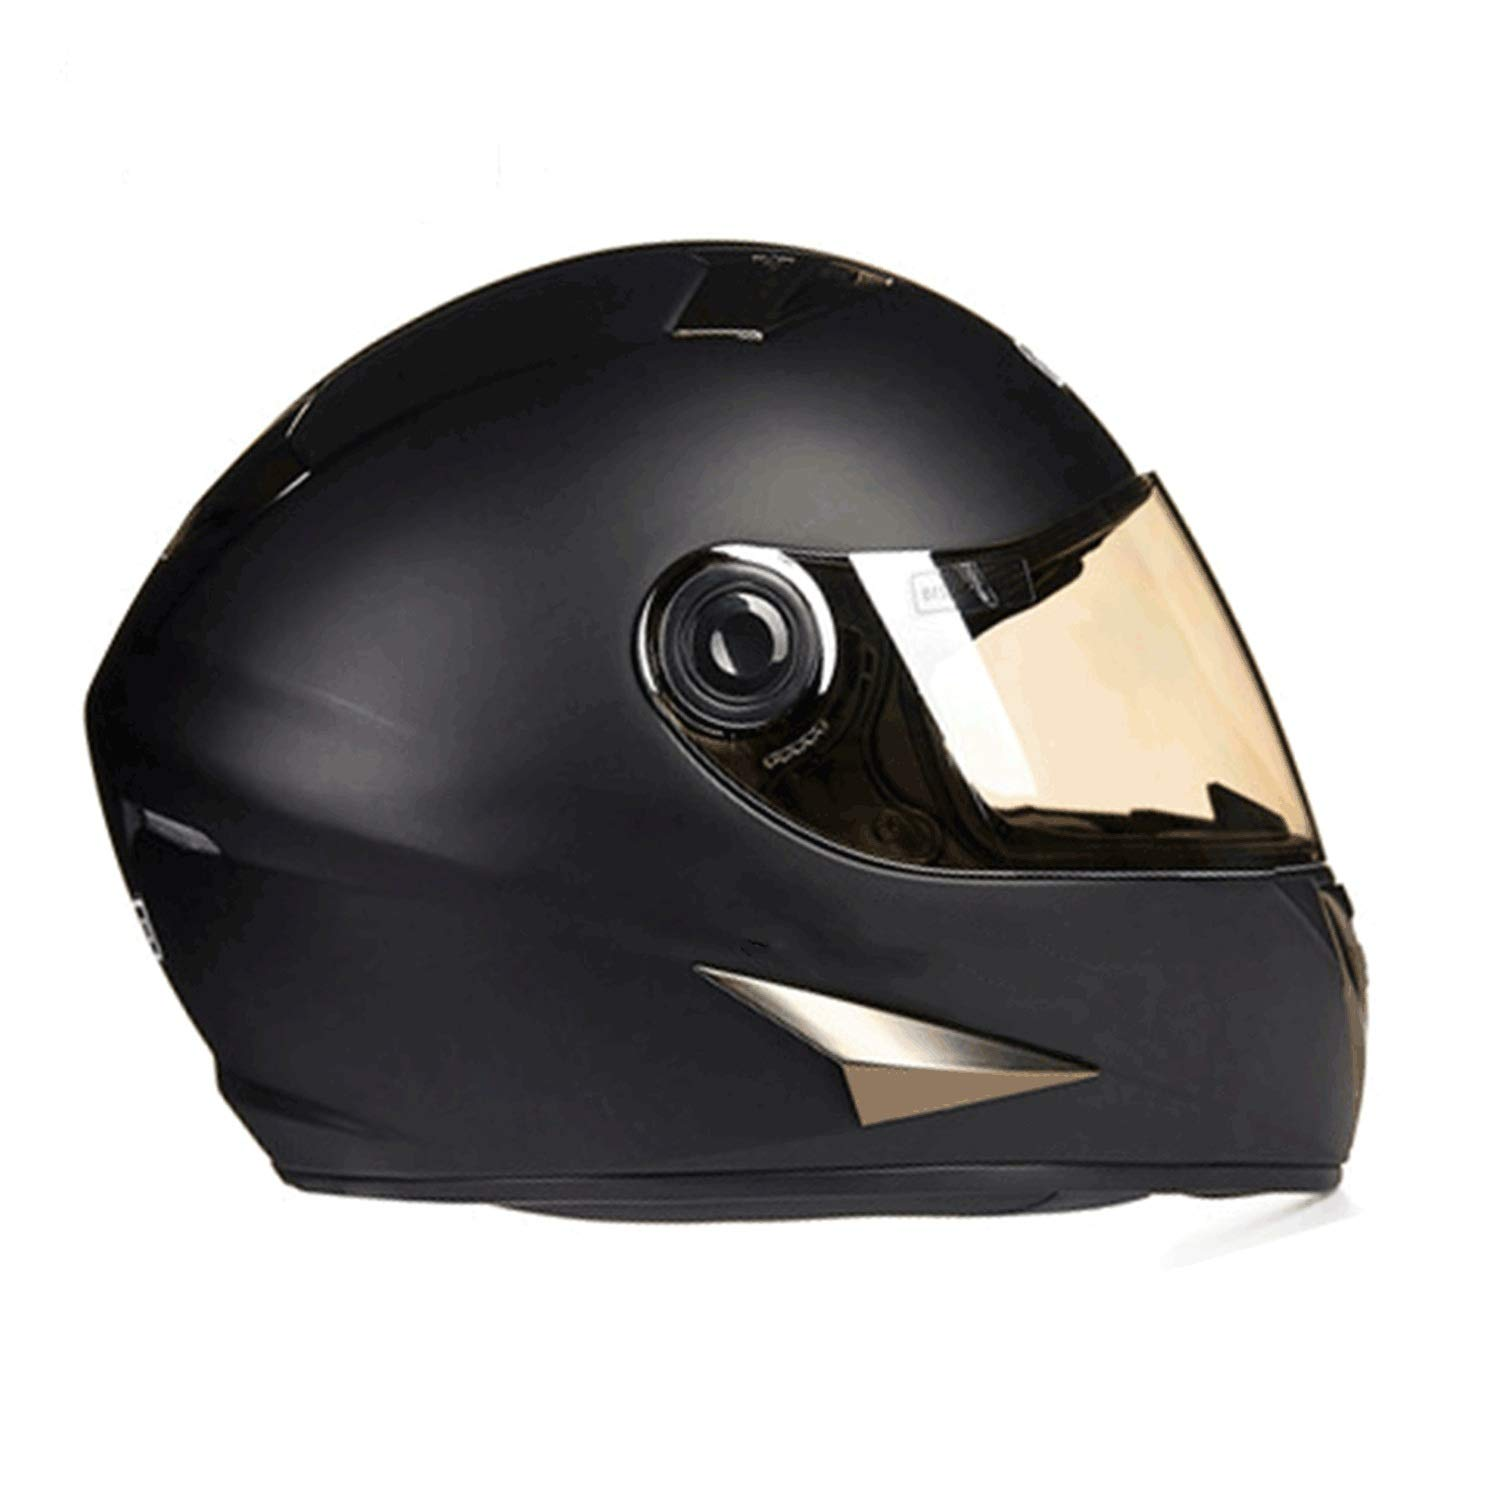 Motorbike Helmet,full Face Helmet,Deceleration Anti-glare Summer Electric Car Helmet Female Four Seasons Helmet M (54-56cM) L (57-58cx) XL (59-60cw) (Color : Matte Black, Size : XL)